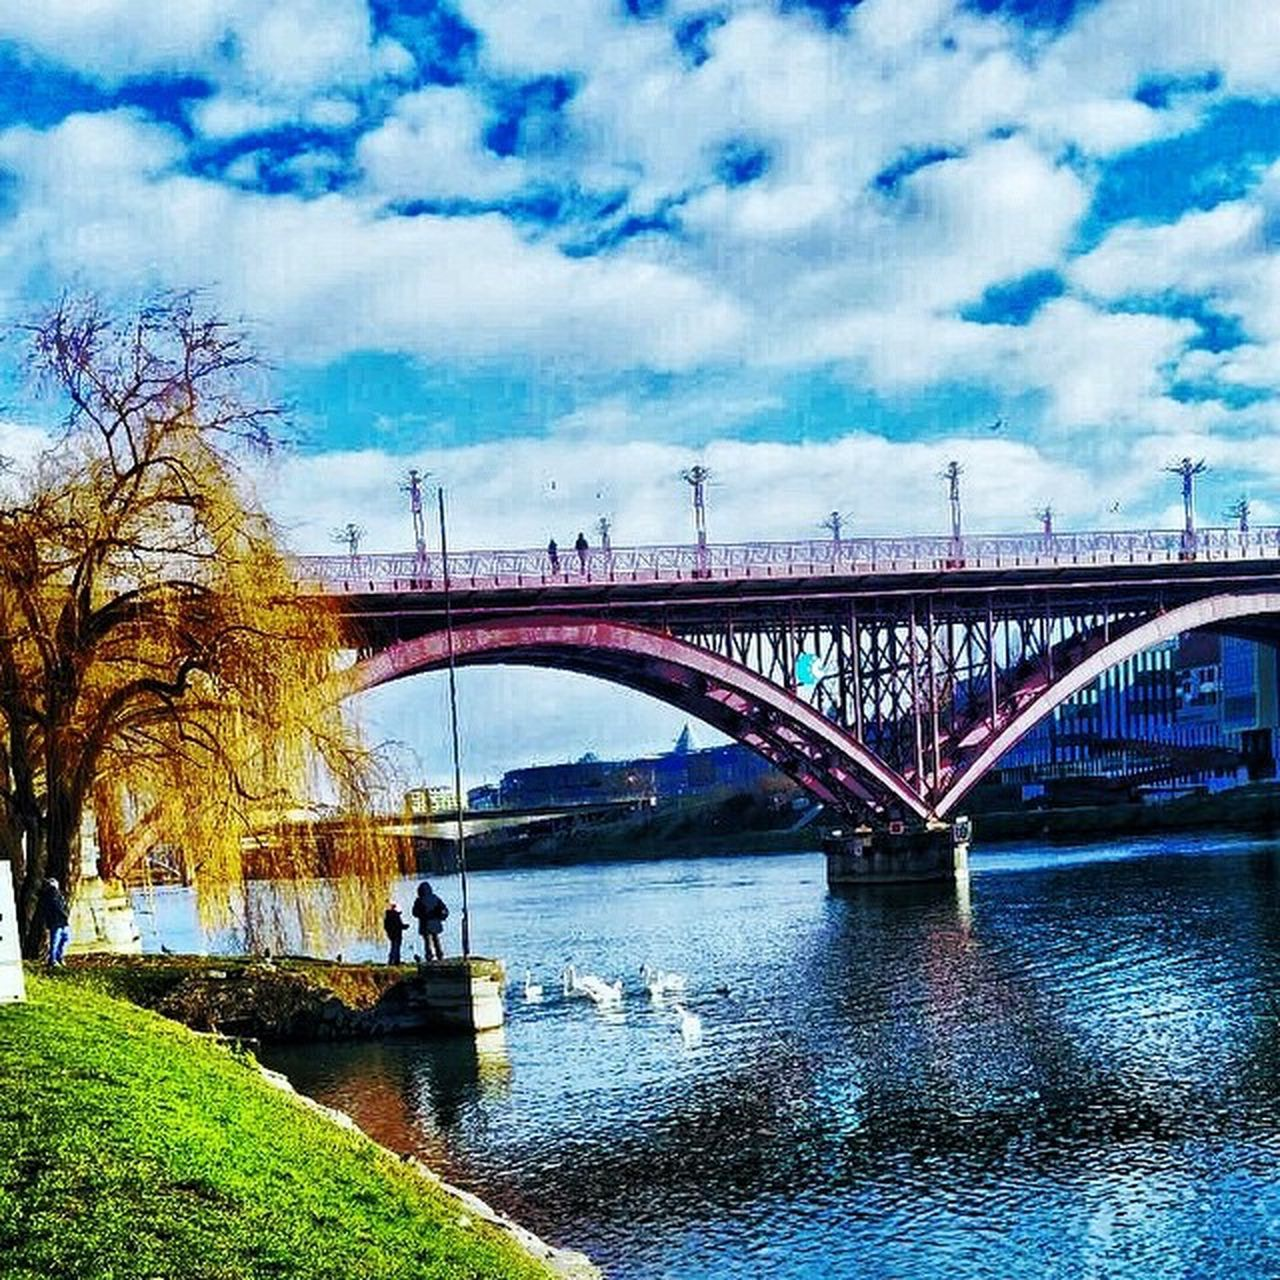 bridge - man made structure, connection, transportation, built structure, architecture, water, sky, river, cloud - sky, outdoors, day, nature, bridge, city, tree, no people